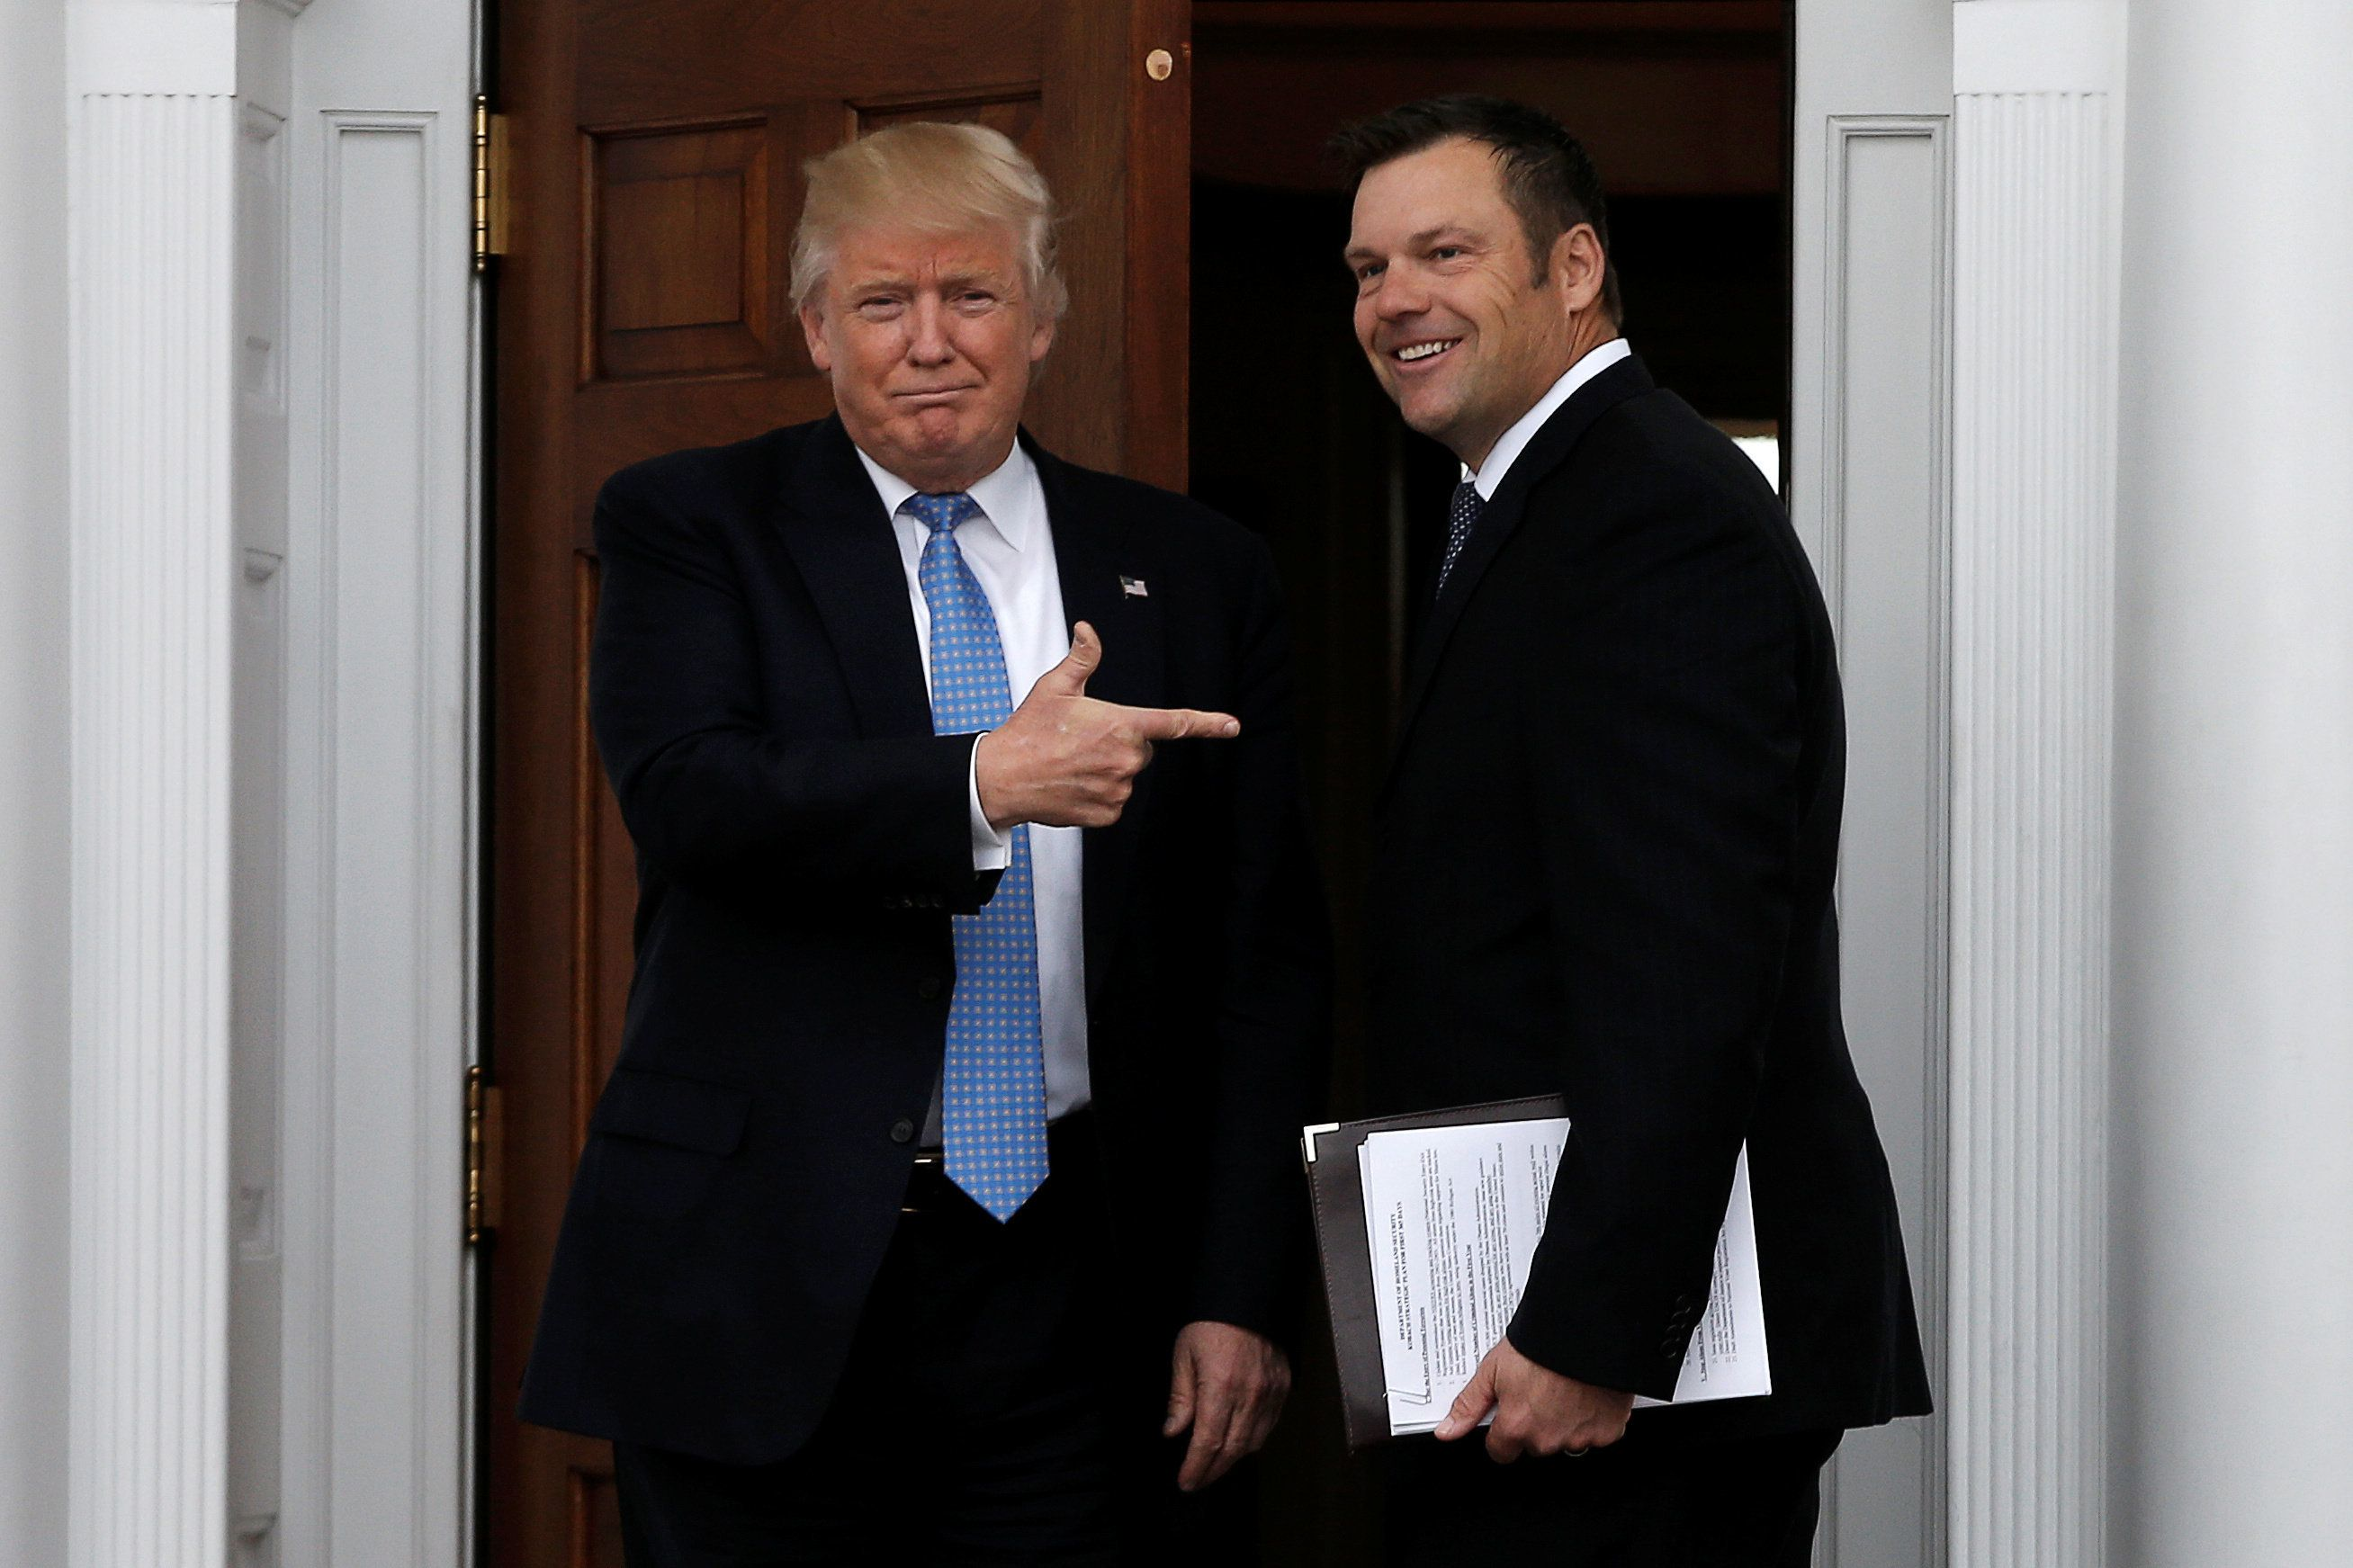 U.S. President-elect Donald Trump stands with Kansas Secretary of State Kris Kobach before their meeting at Trump National Golf Club in Bedminster, New Jersey, U.S., November 20, 2016.  REUTERS/Mike Segar